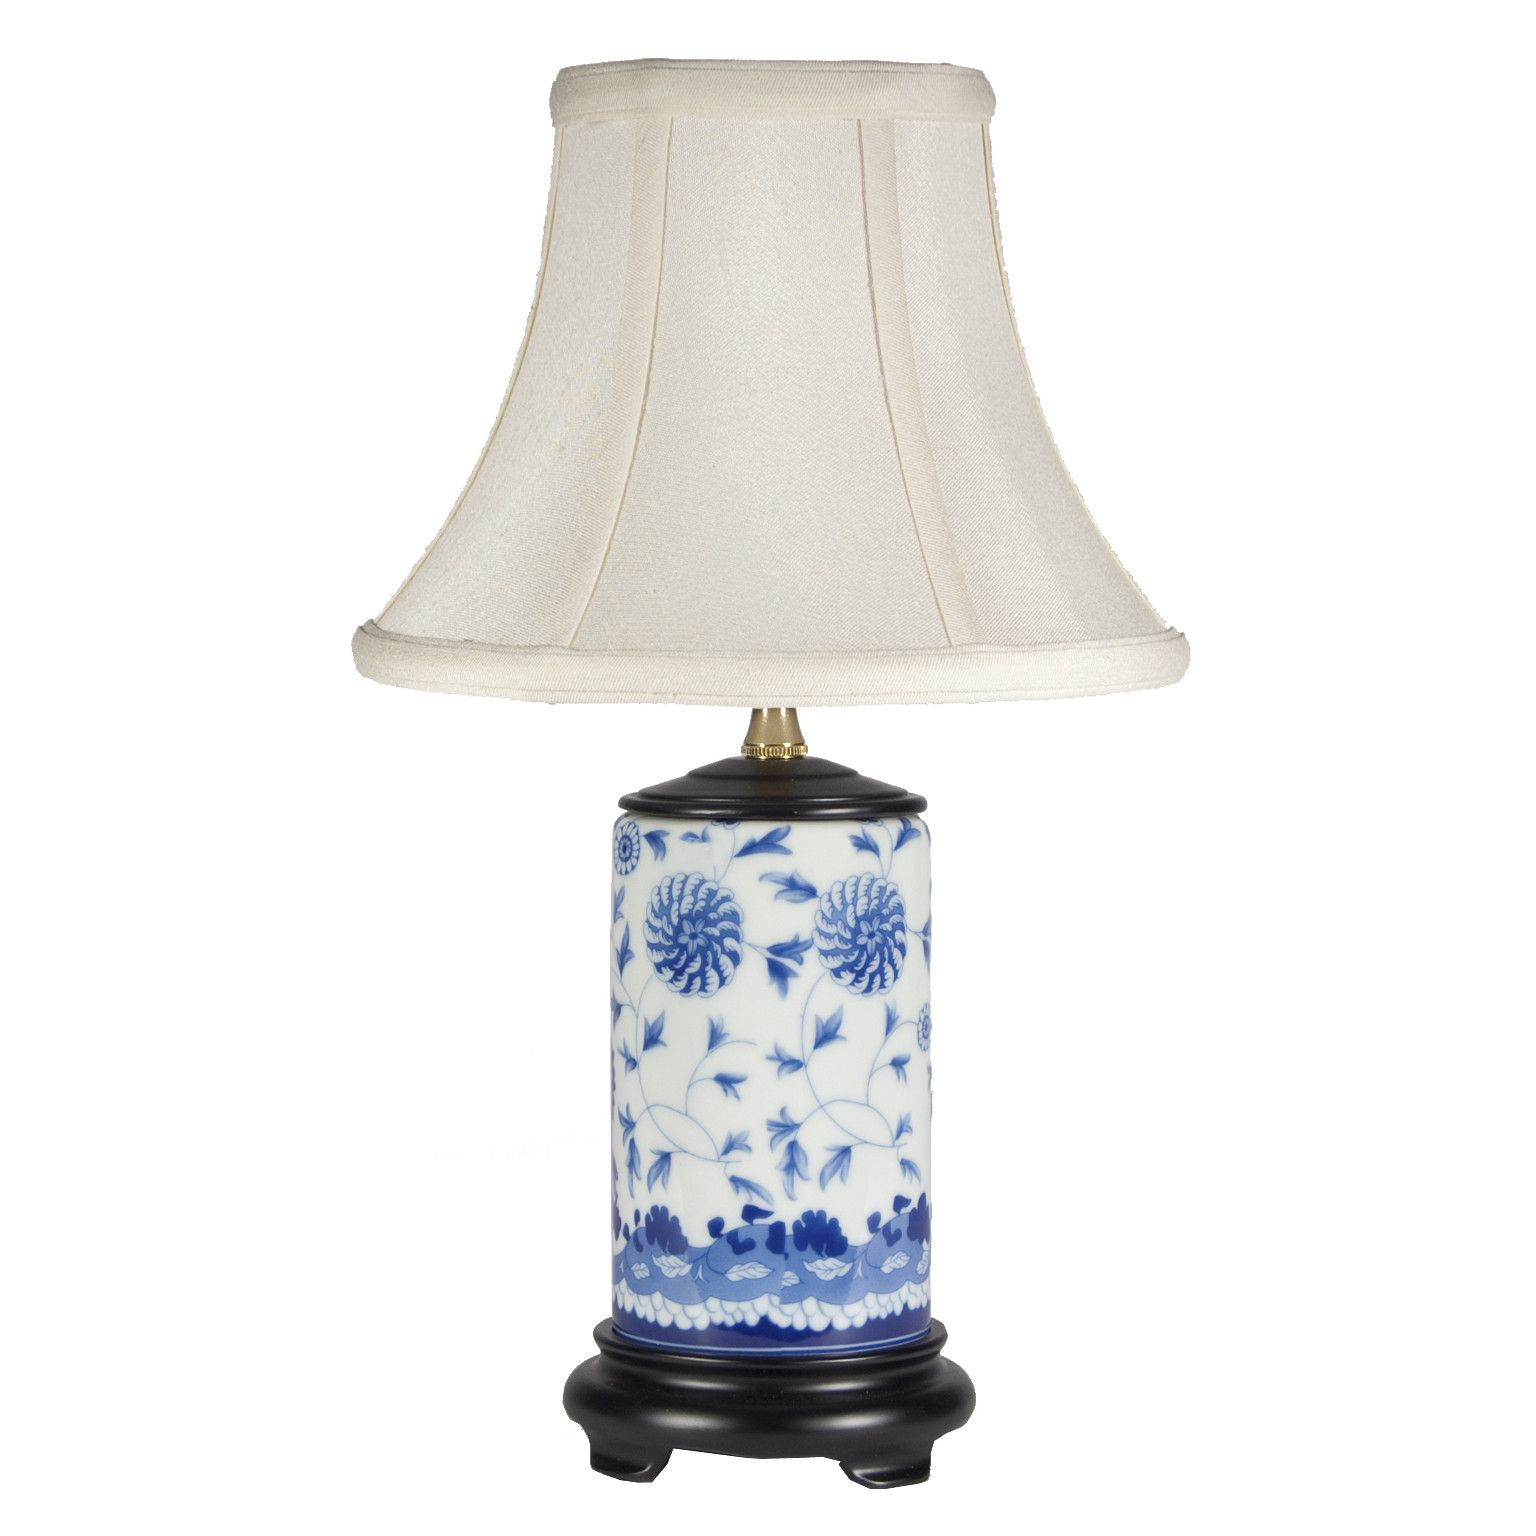 Small Traditional Blue White Porcelain Lamp Lamp Table Lamp Porcelain Lamp